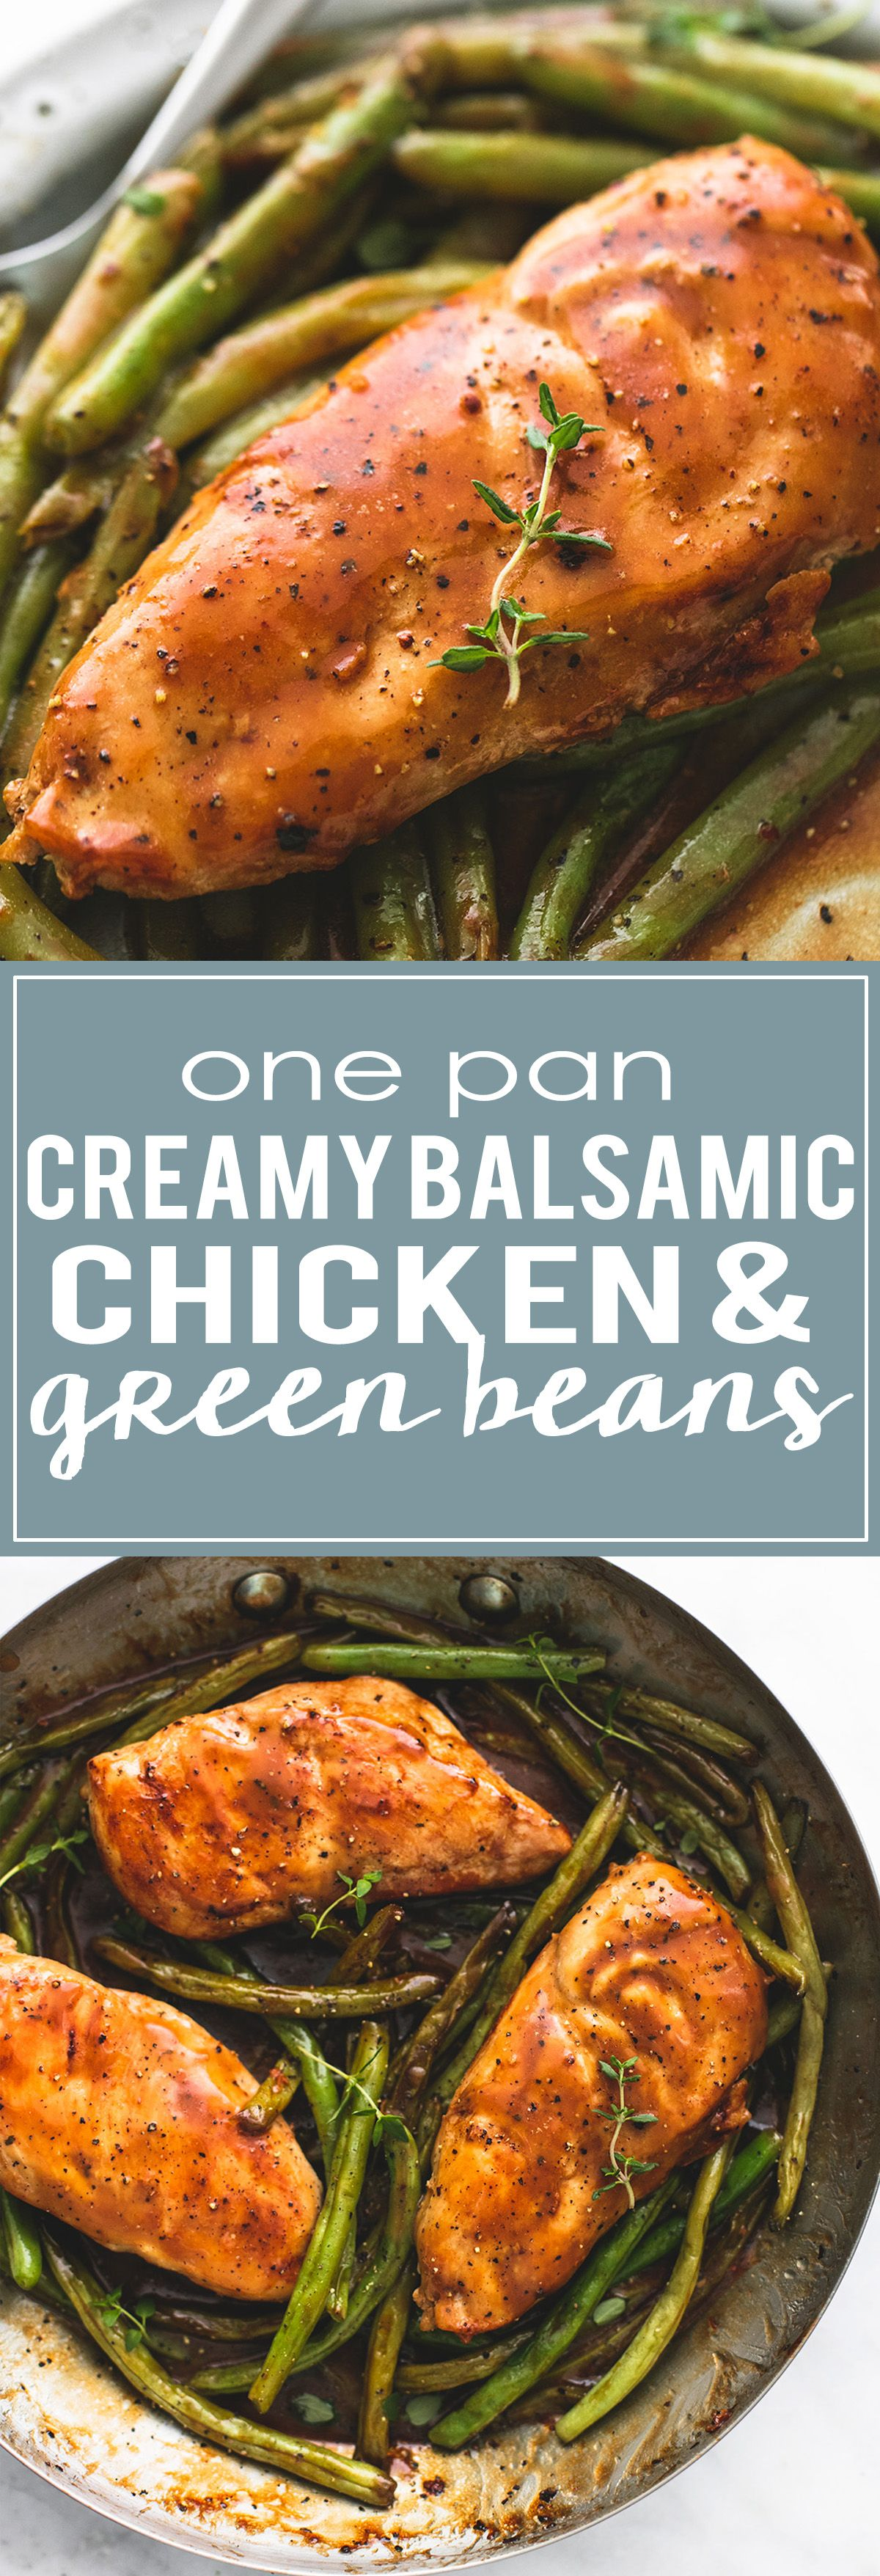 One Pan Creamy Balsamic Chicken & Green Beans is a delicious, healthy, and easy dinner ready in just 30 minutes! | lecremedelacrumb.com